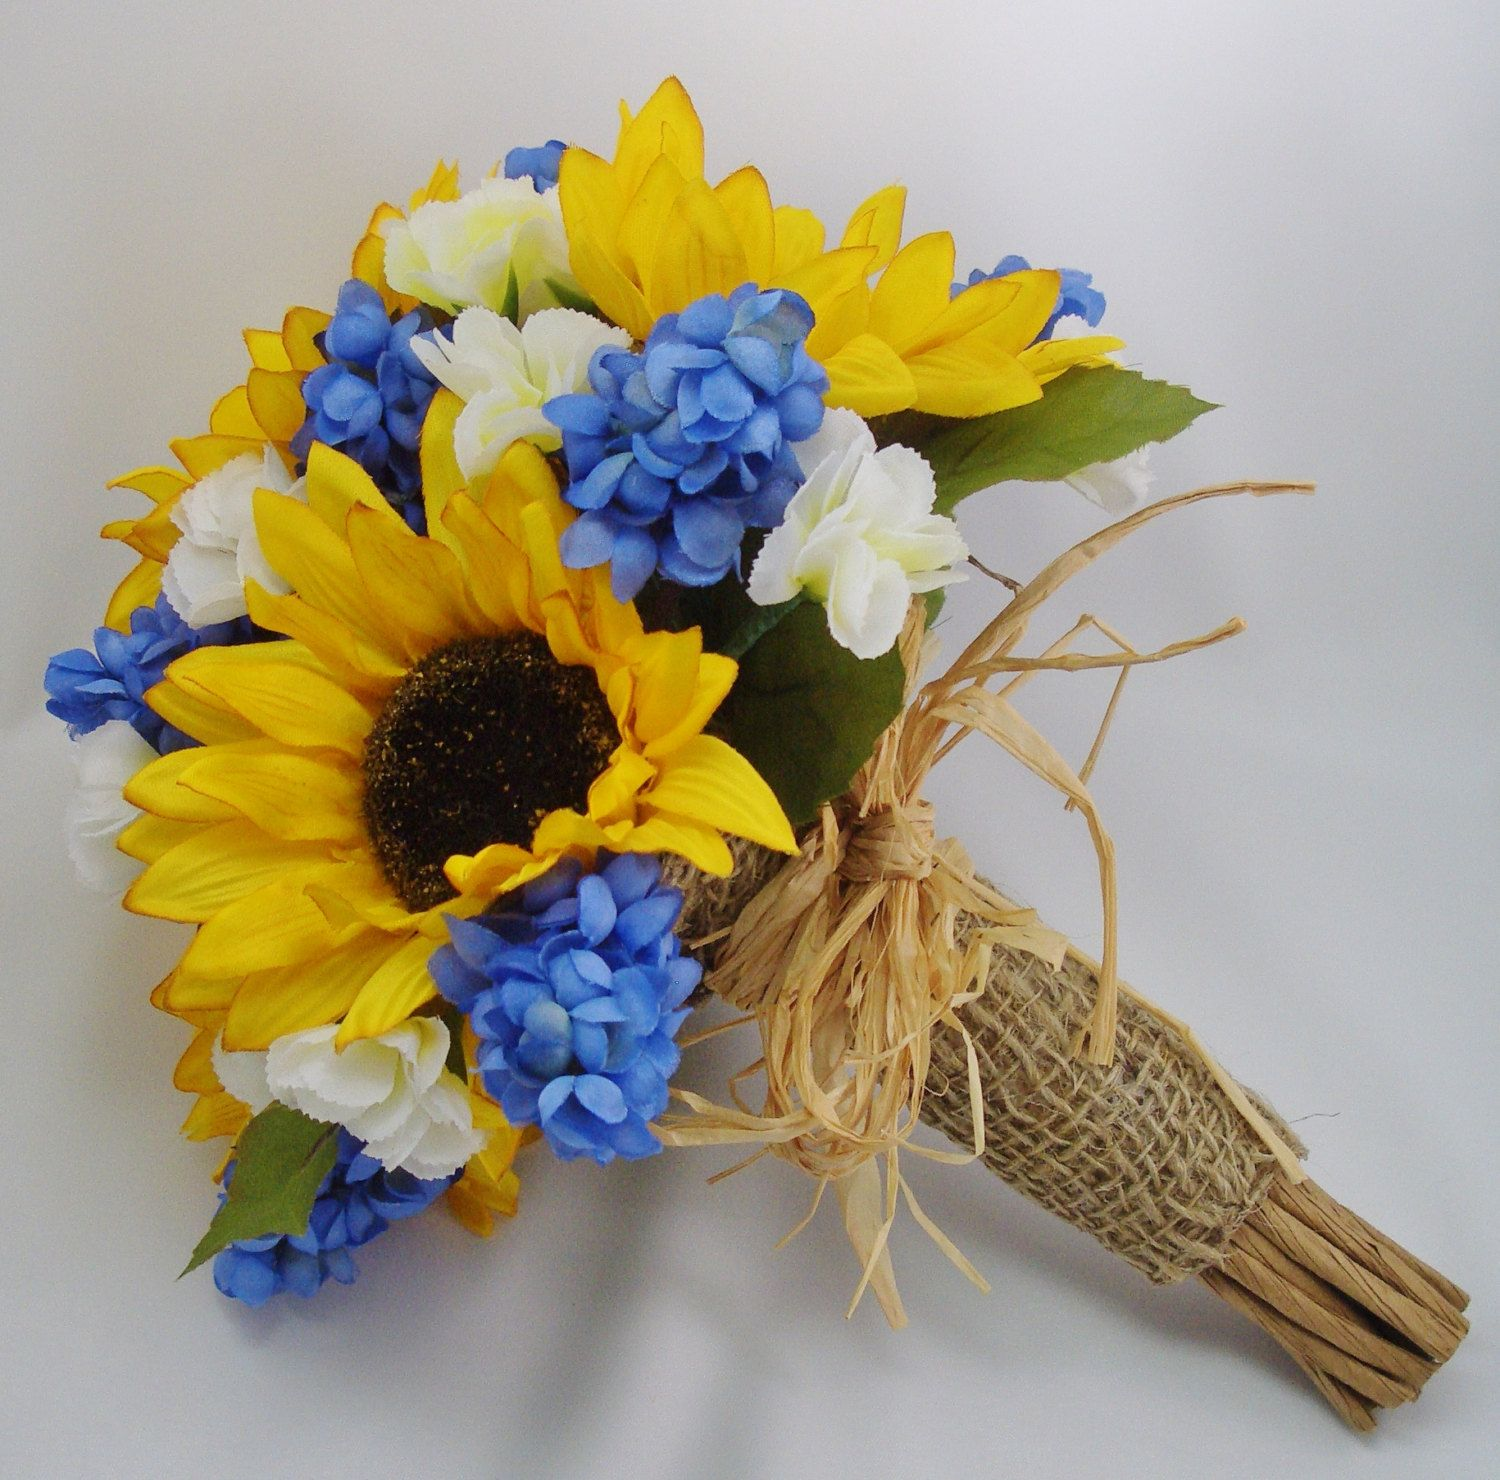 sunflower bouquet with blue hyacinth rustic wedding flowers straw and burlap accents